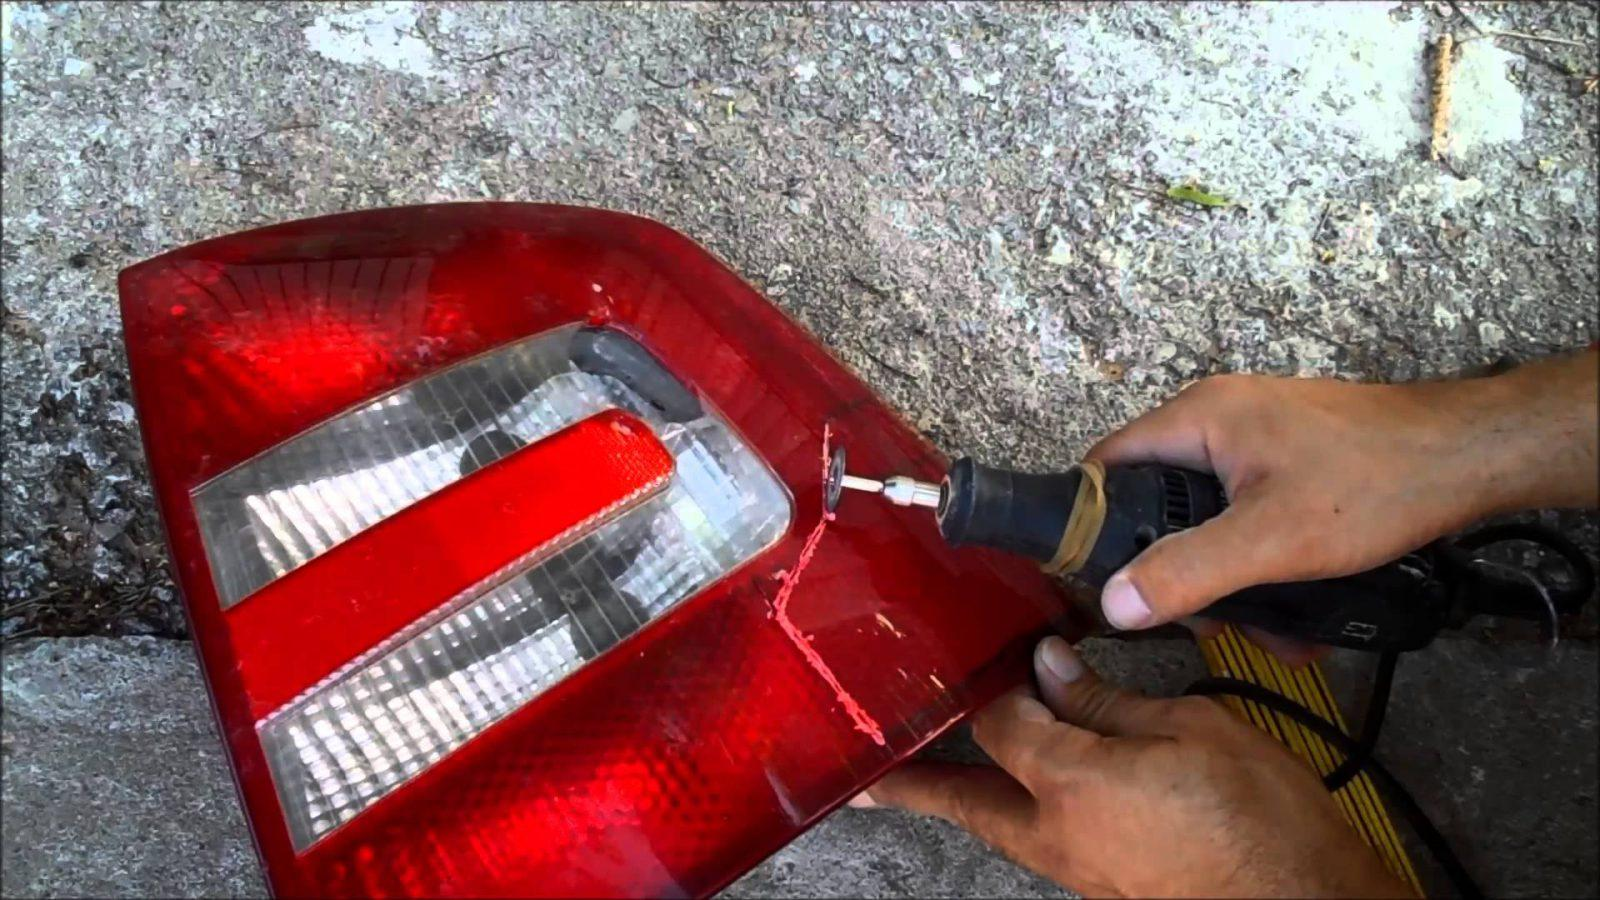 Tail light repair how to fix broken tail light at home tail light repair aloadofball Image collections